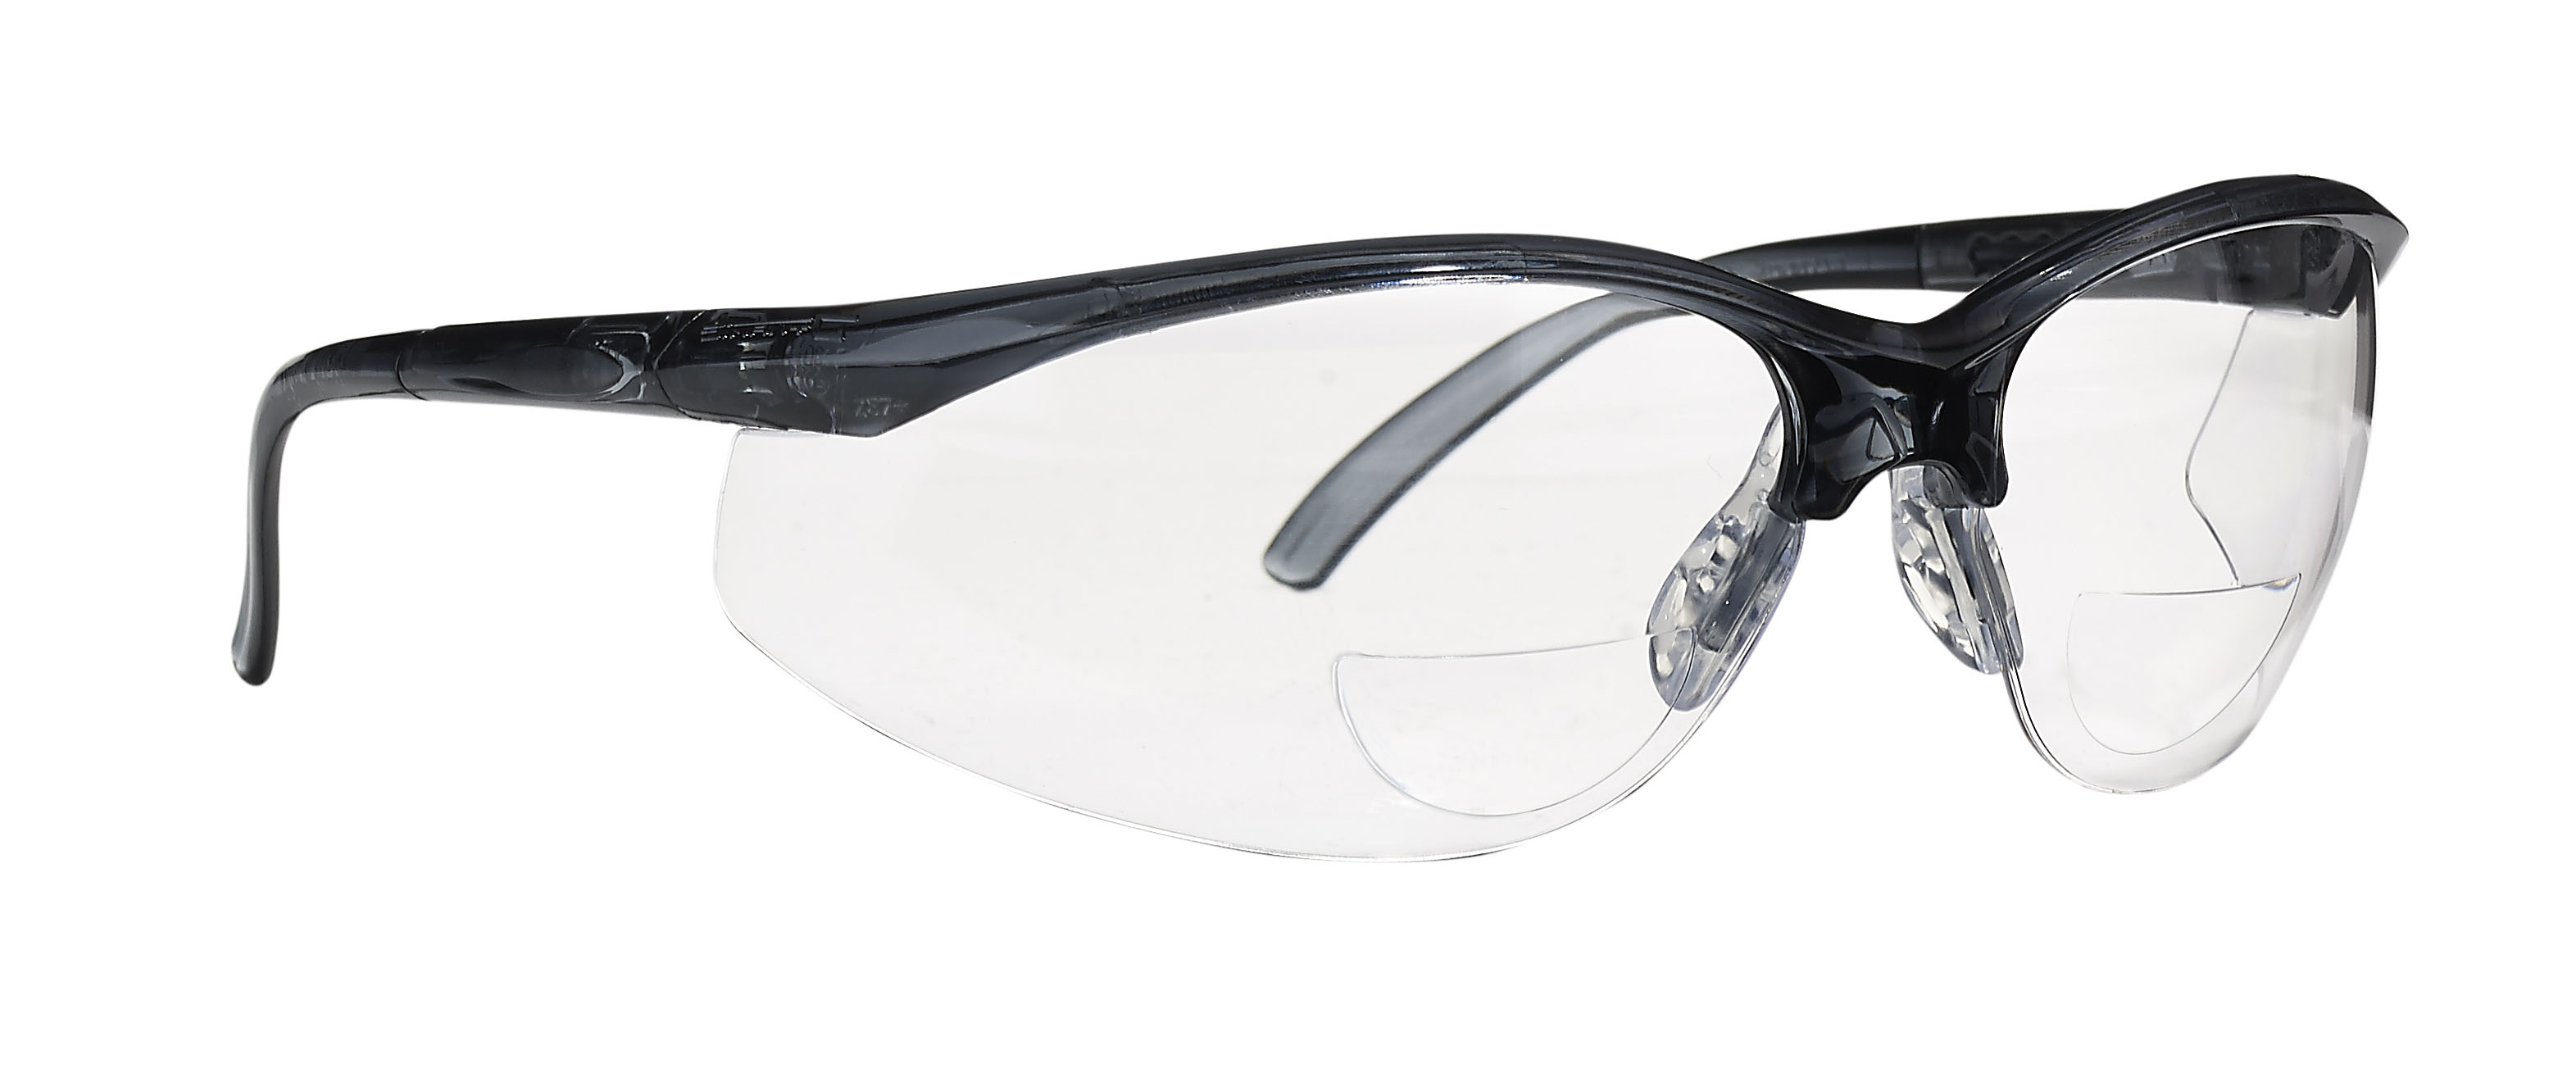 Safety Glasses - Dynamic Safety Renegade Reader's - Grey w/Clr Lens - 1.5 Diopter